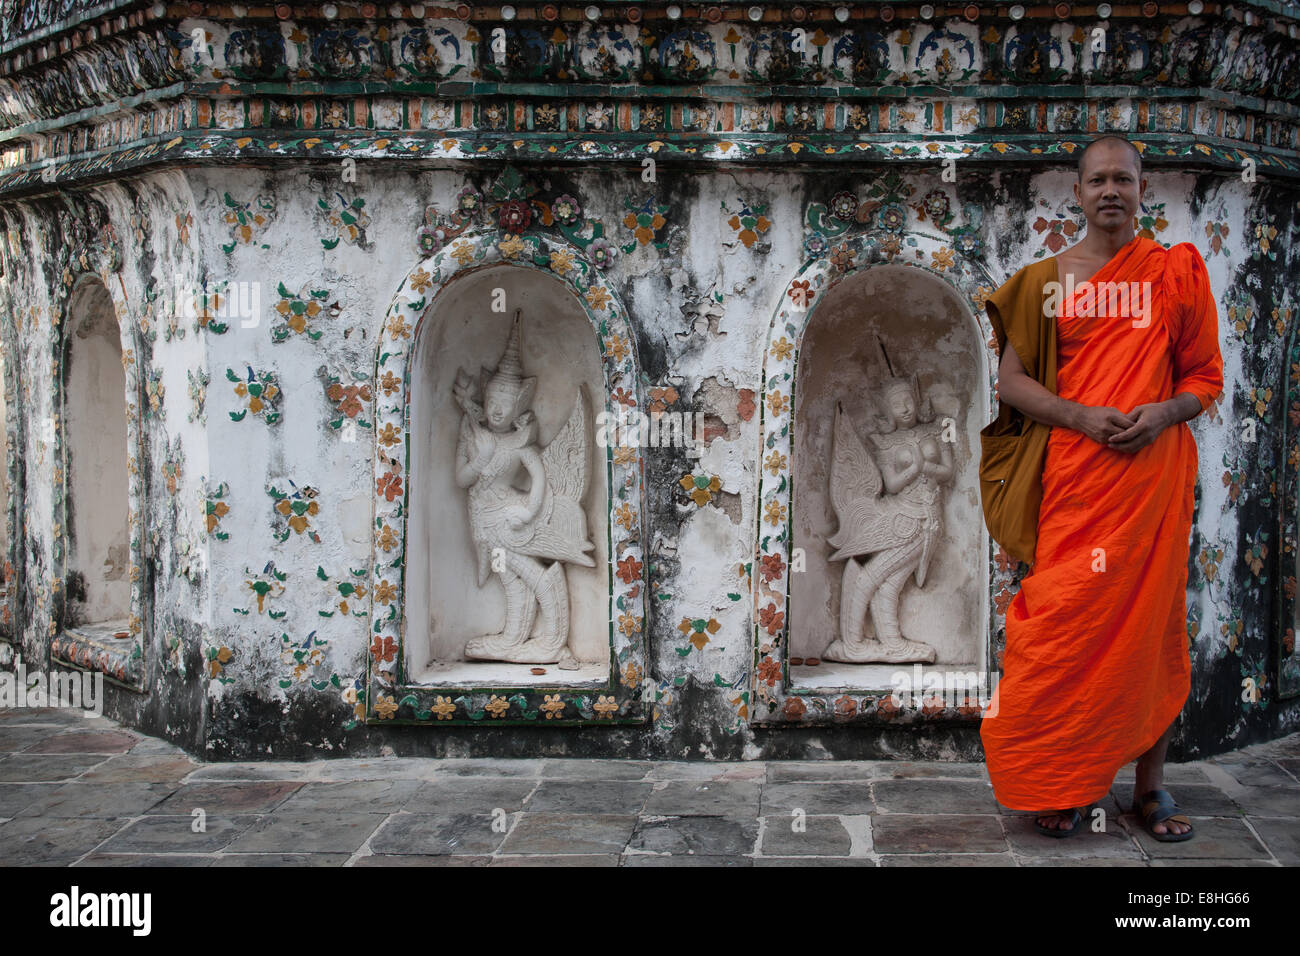 Monk at Wat Pho in Bangkok Thailand - Stock Image